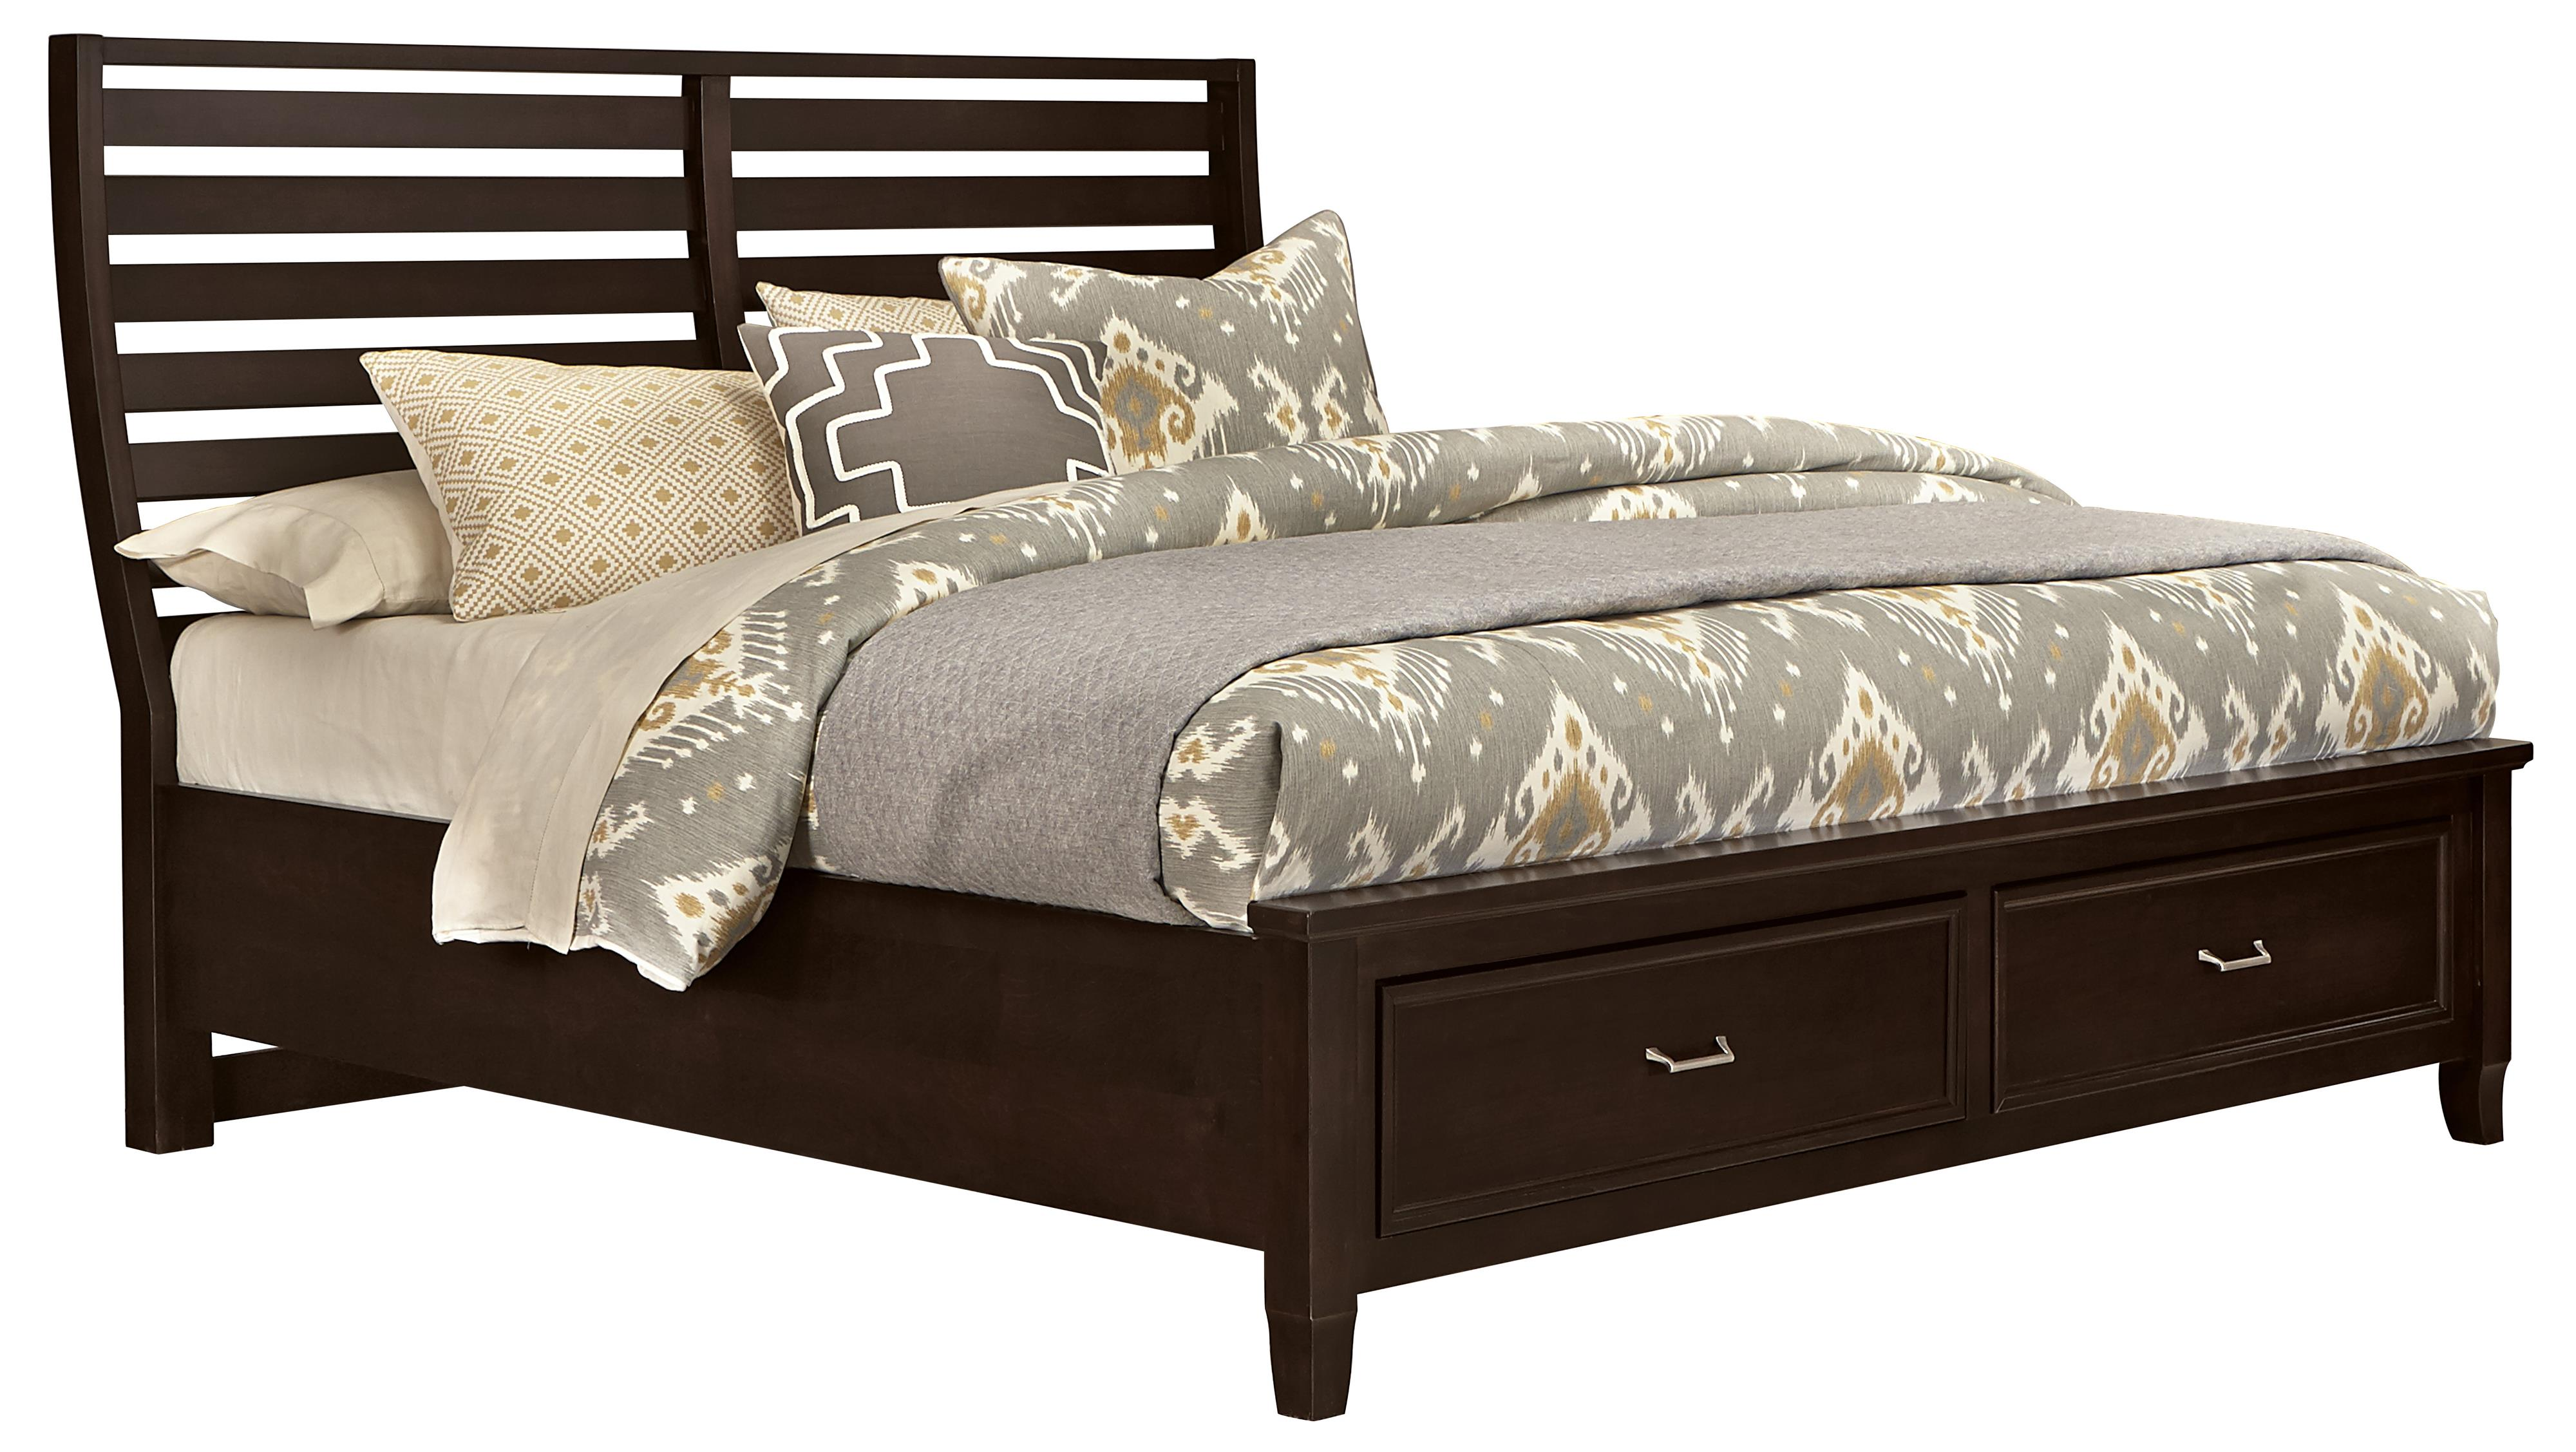 Vaughan Bassett Commentary King Benchback Bed with Storage Footboard - Item Number: 390-668+066B+502+666T